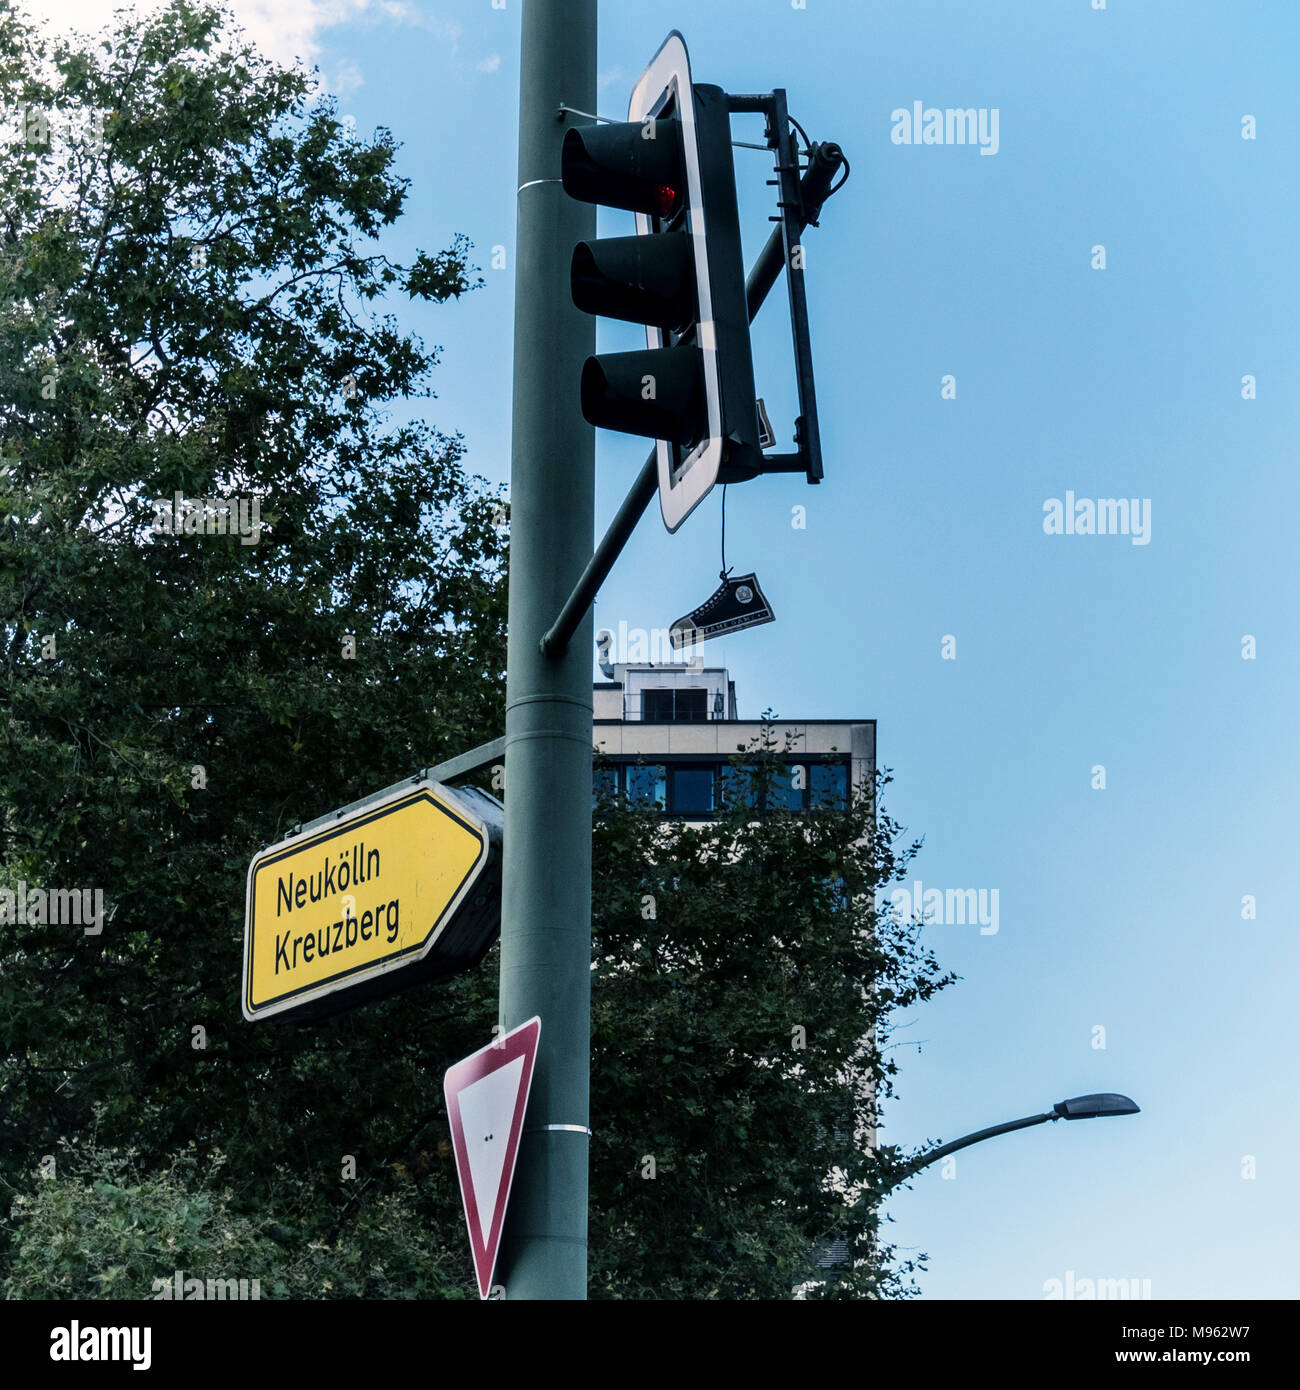 Yield sign, Street signs,traffic lights and suxpended shoe against blue sky, Berlin - Stock Image